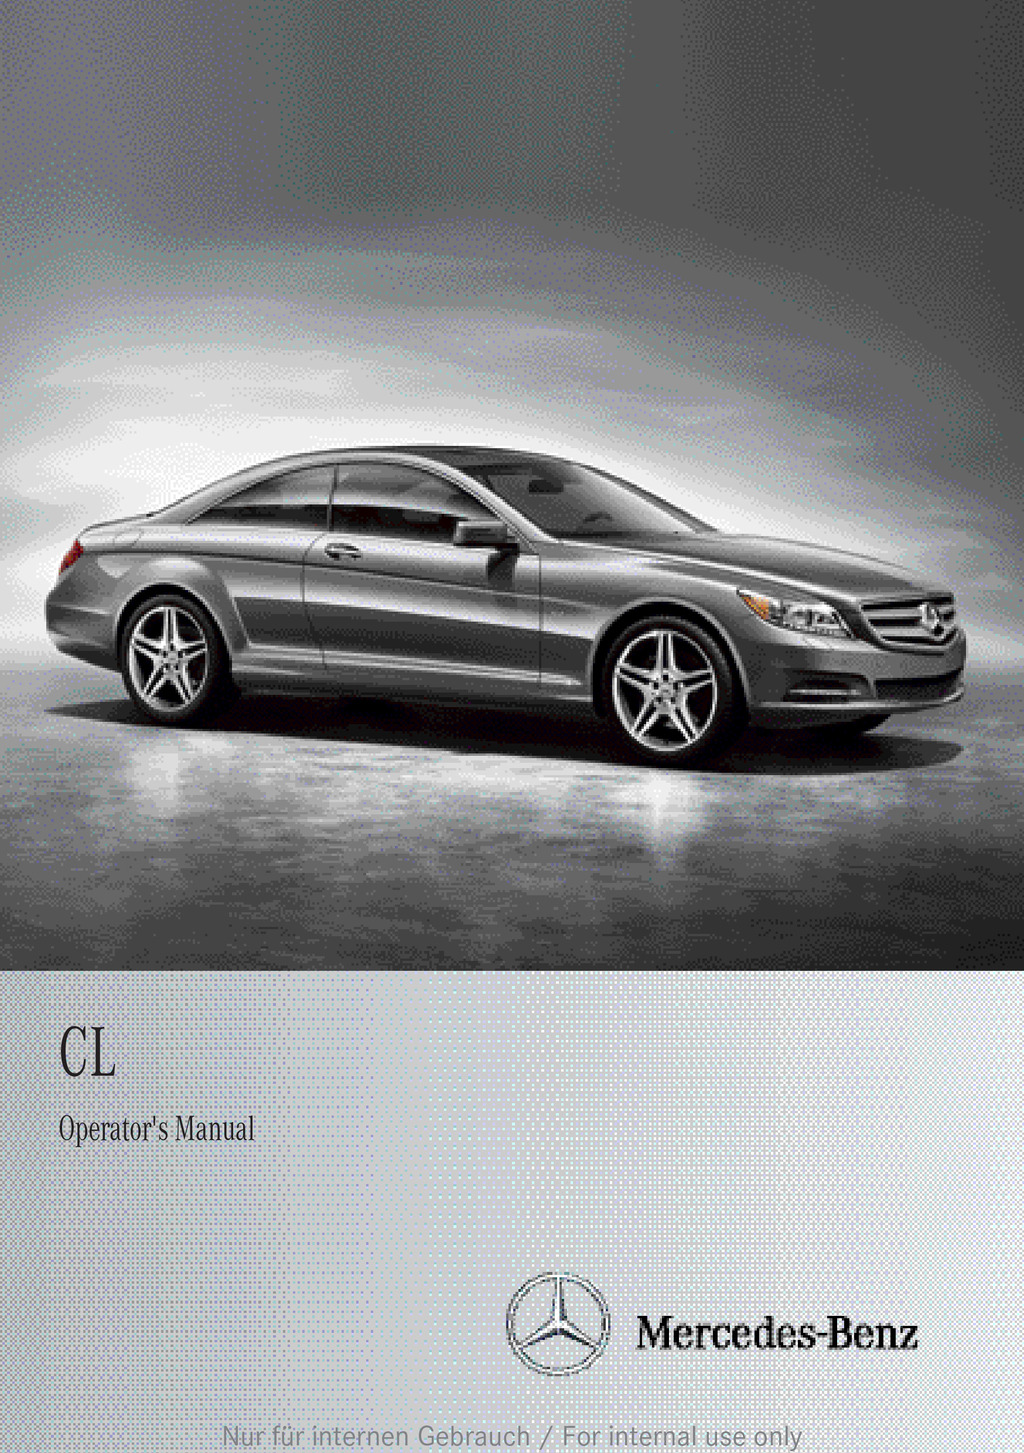 2013 Mercedes-Benz CL Class owners manual